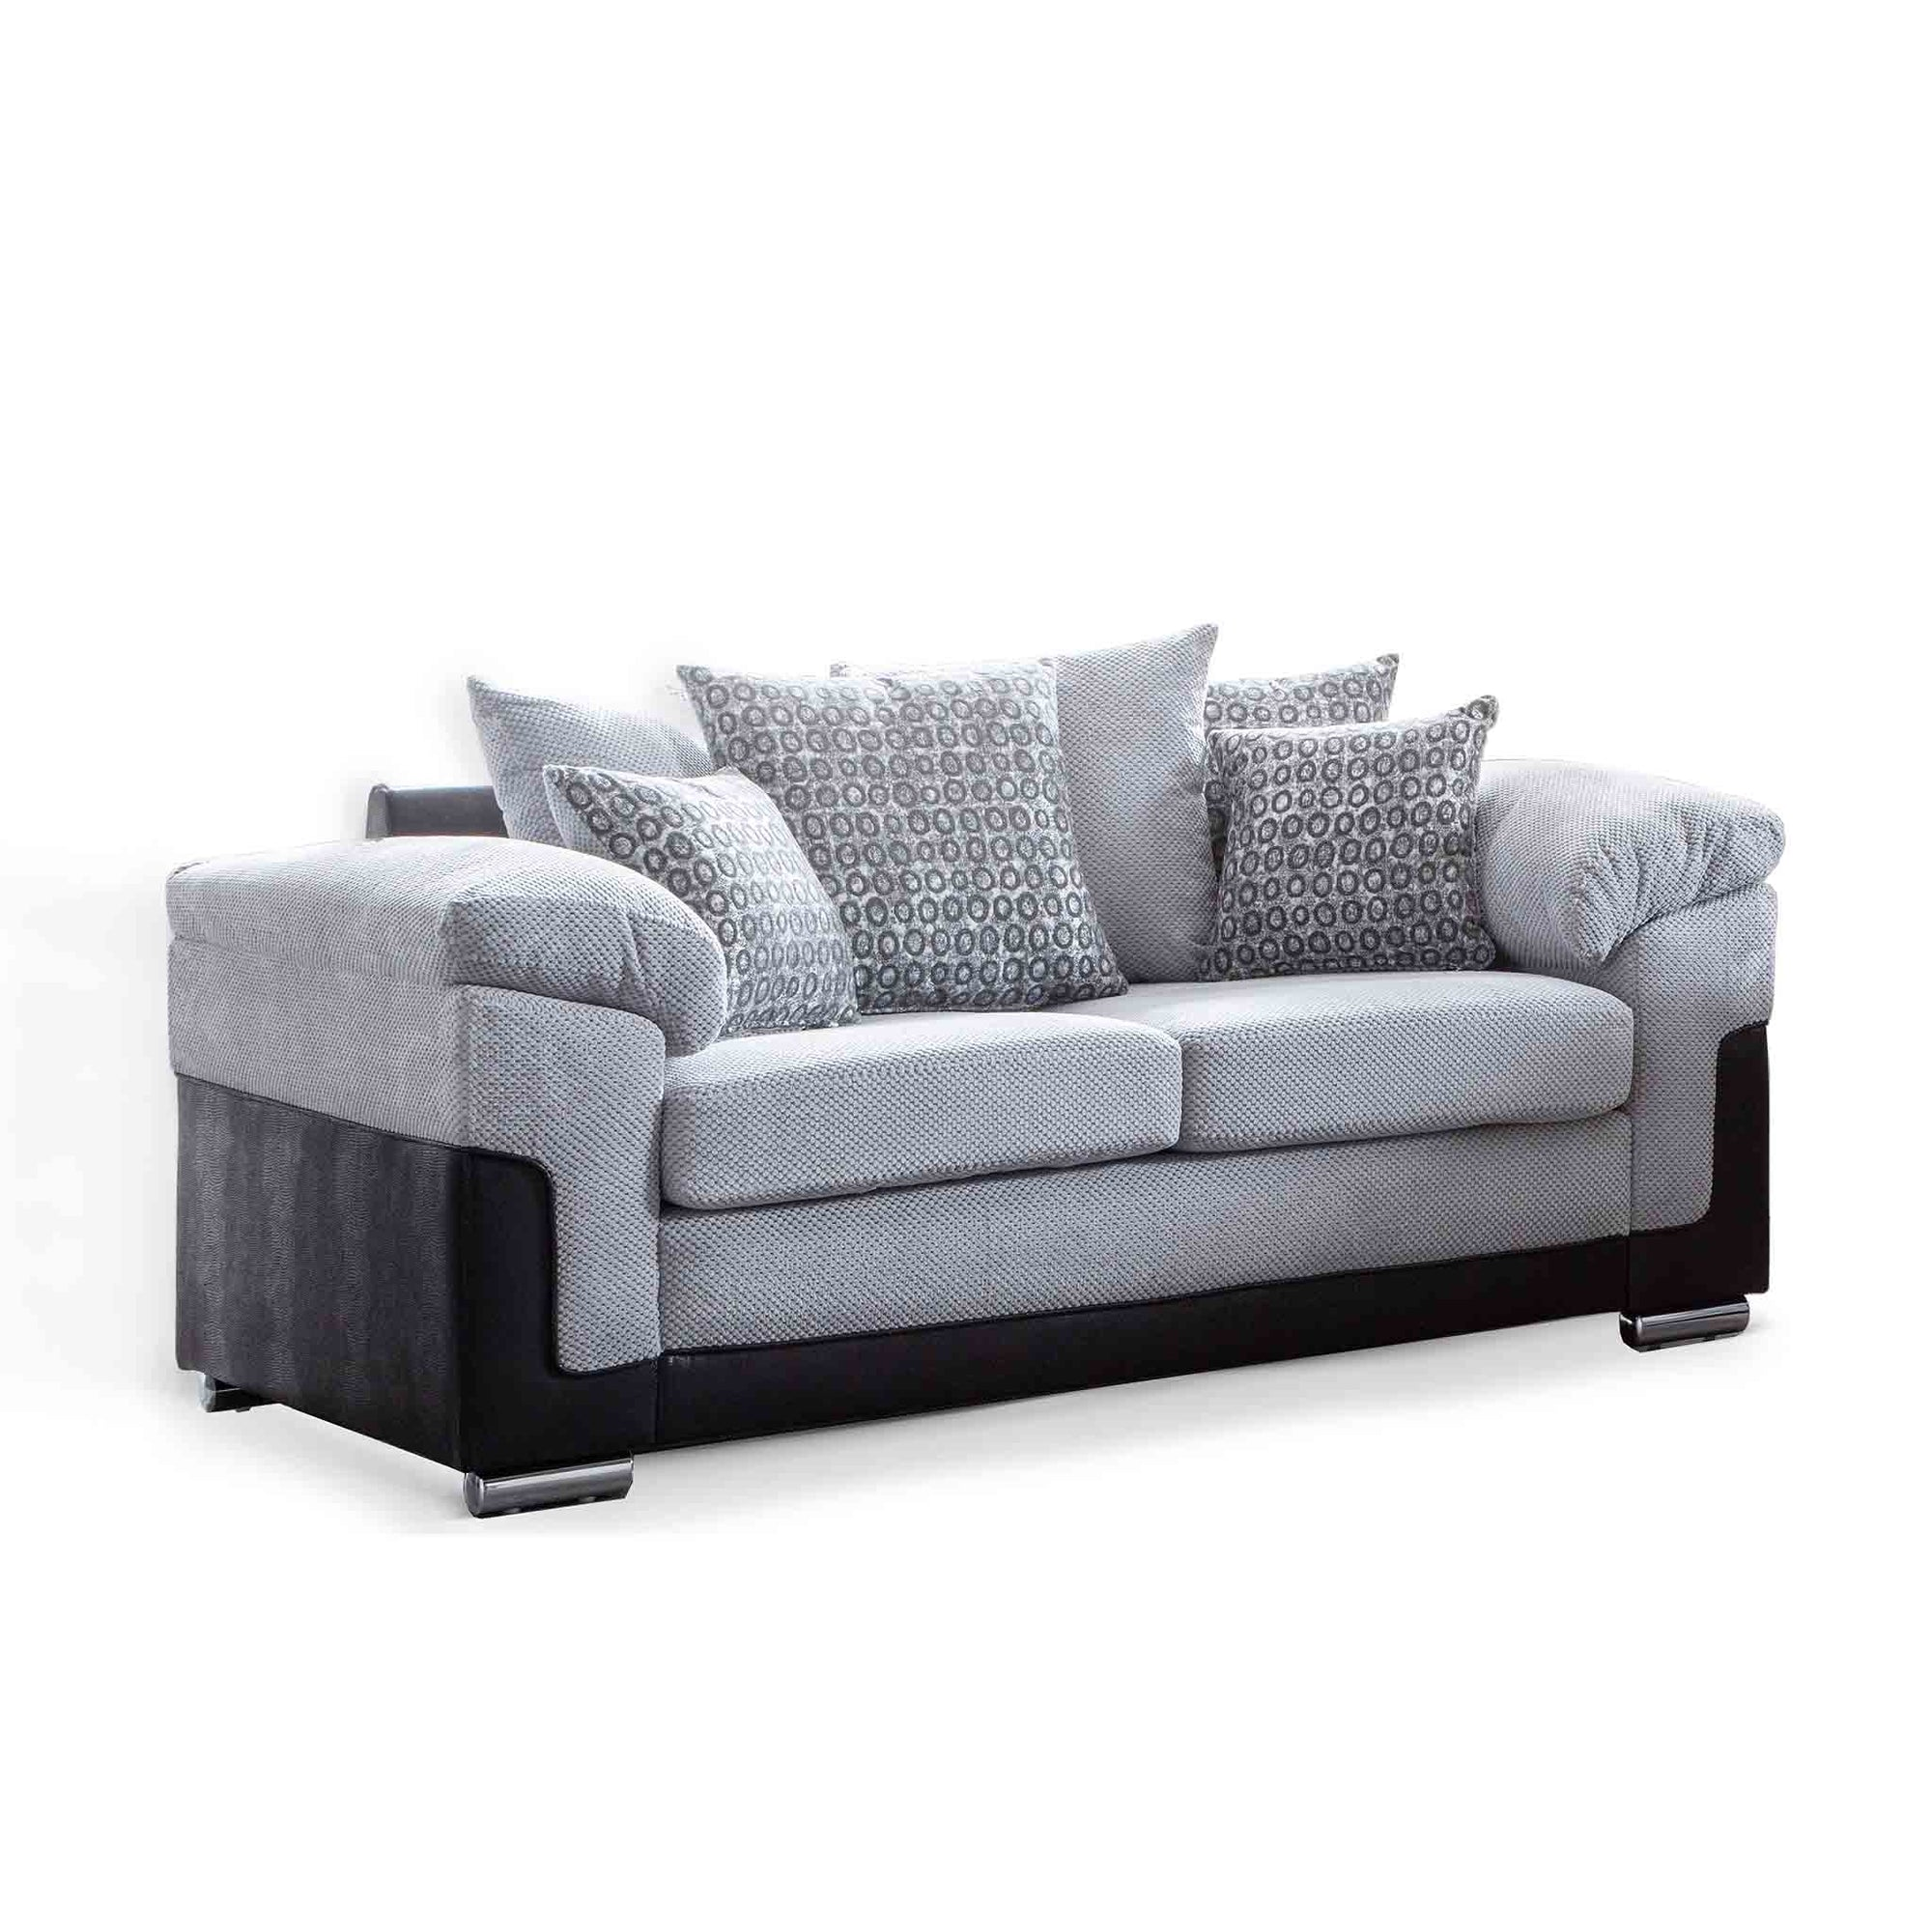 Ameba Silver 2 Seater Fabric & Faux Leather Sofa from Roseland Furniture